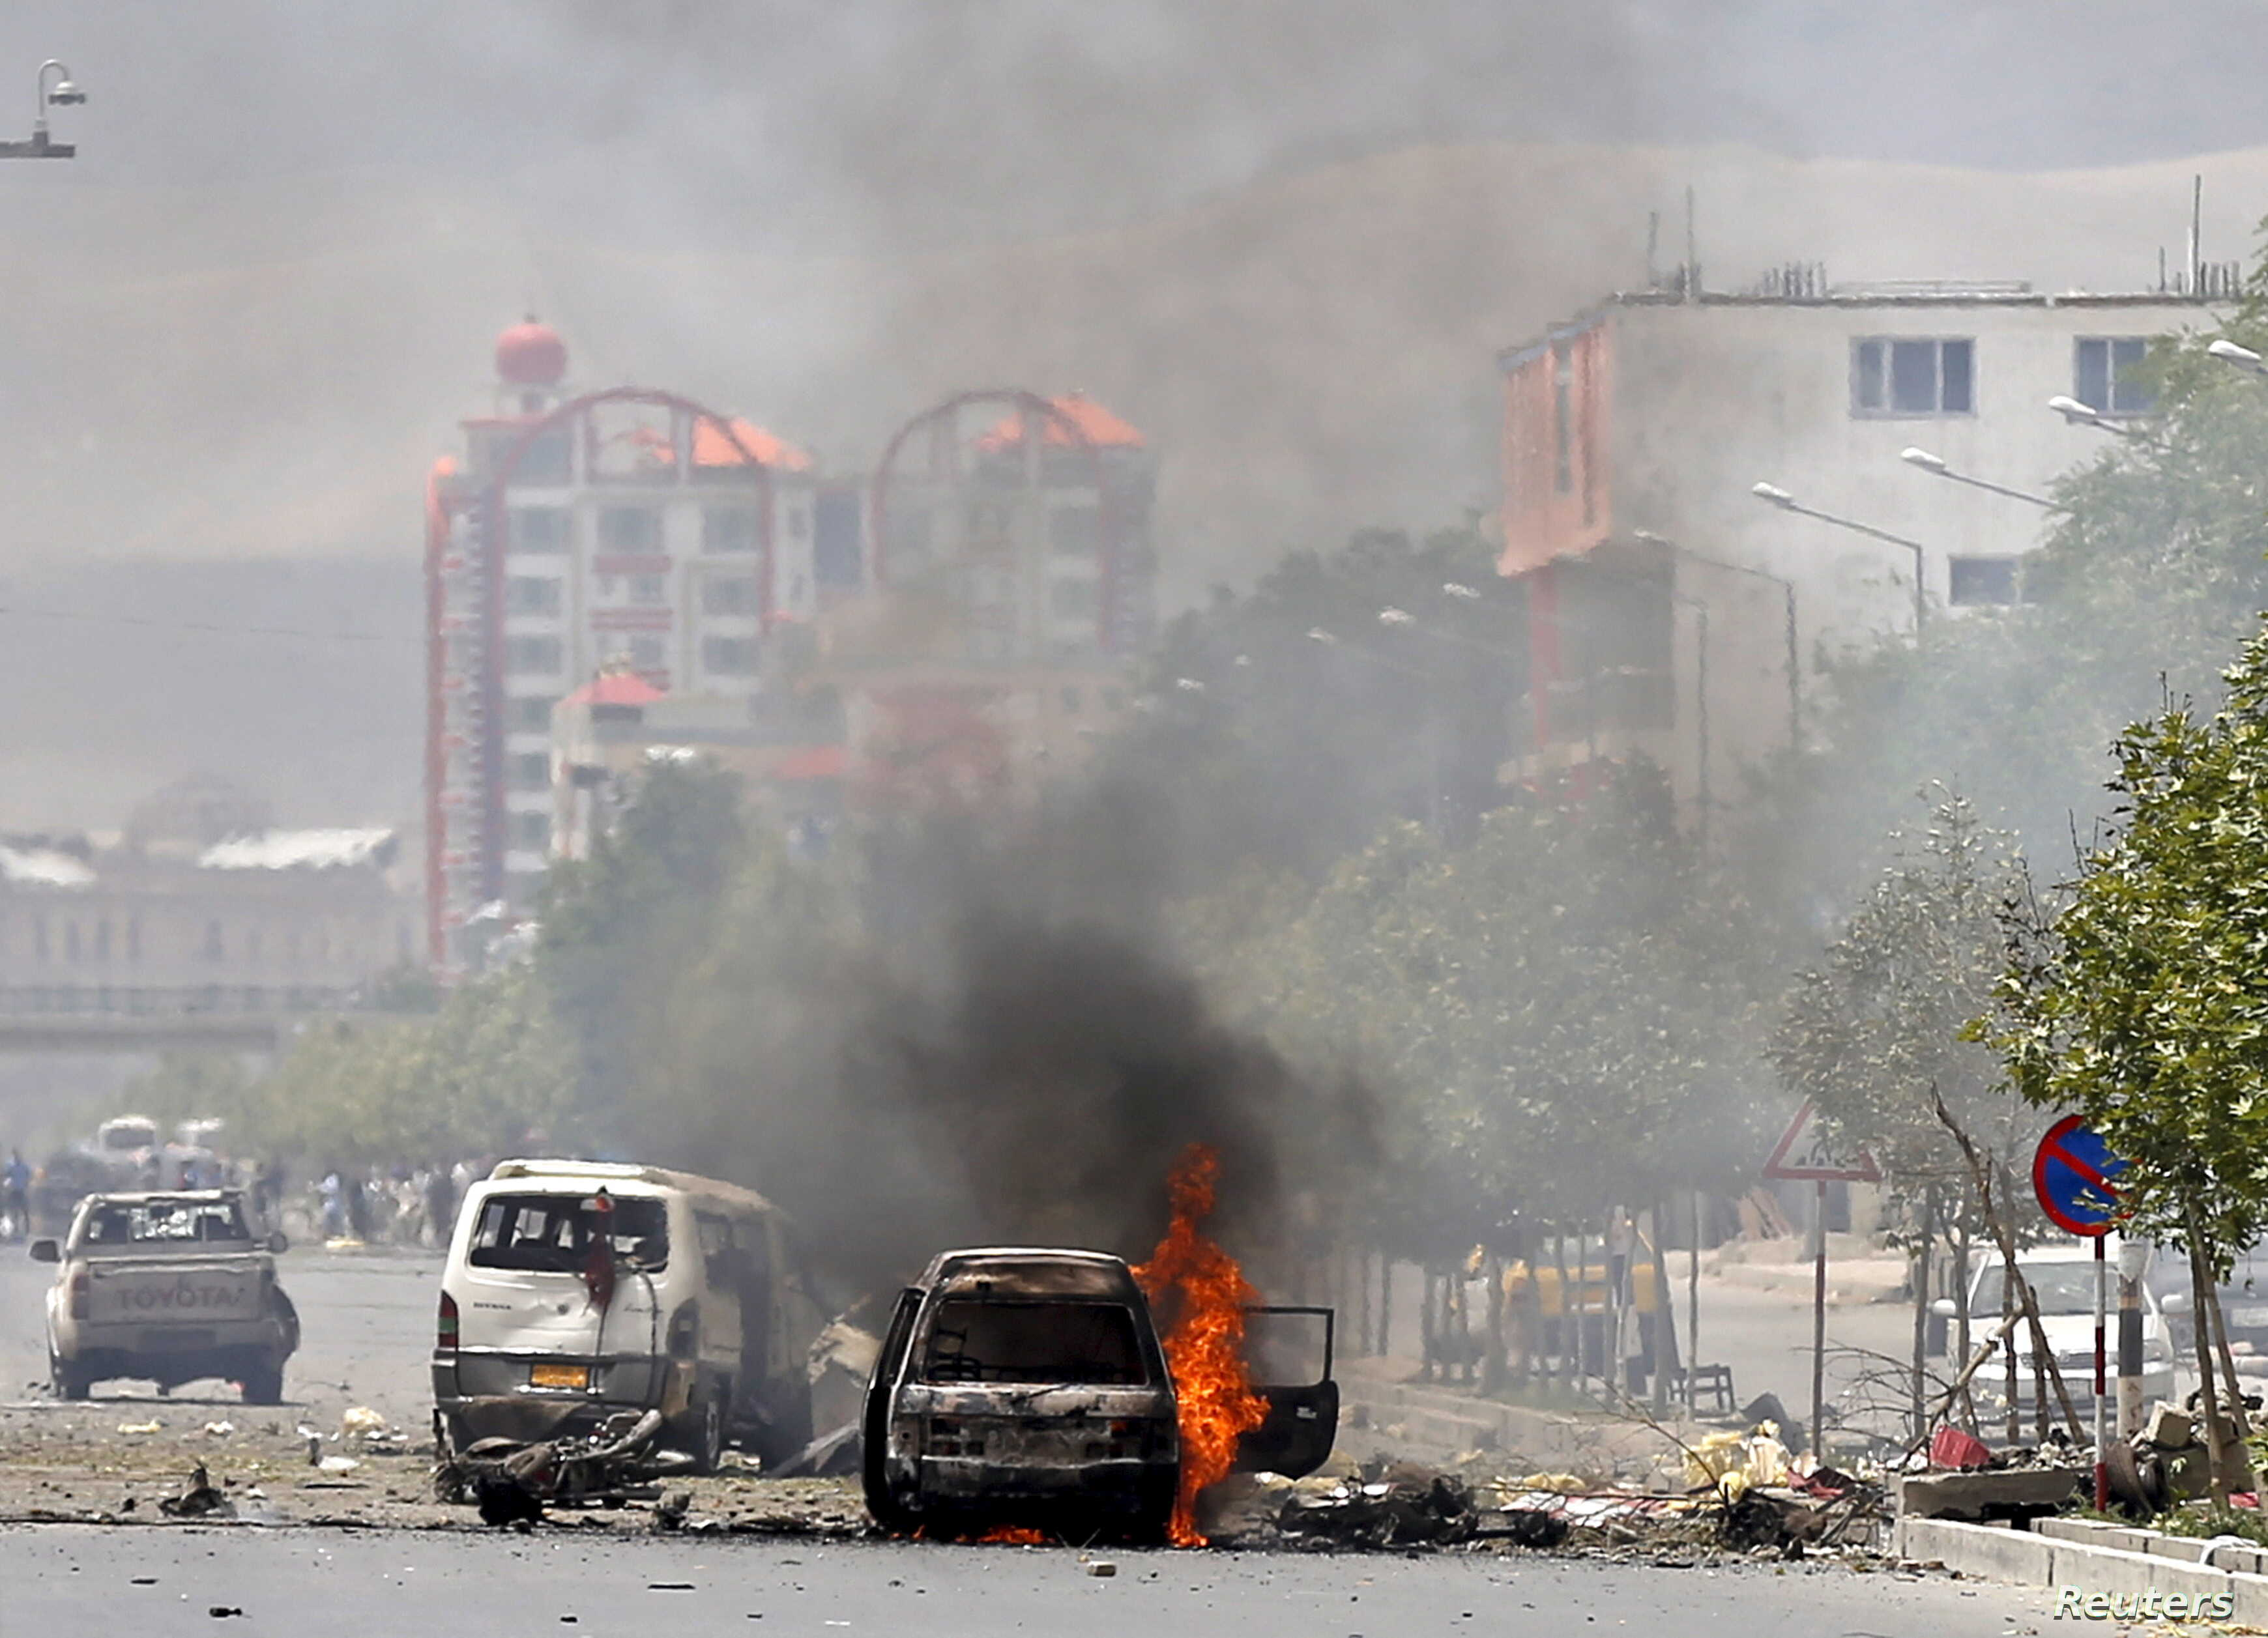 A vehicle is seen on fire after a blast near the Afghan parliament in Kabul, Afghanistan, June 22, 2015.